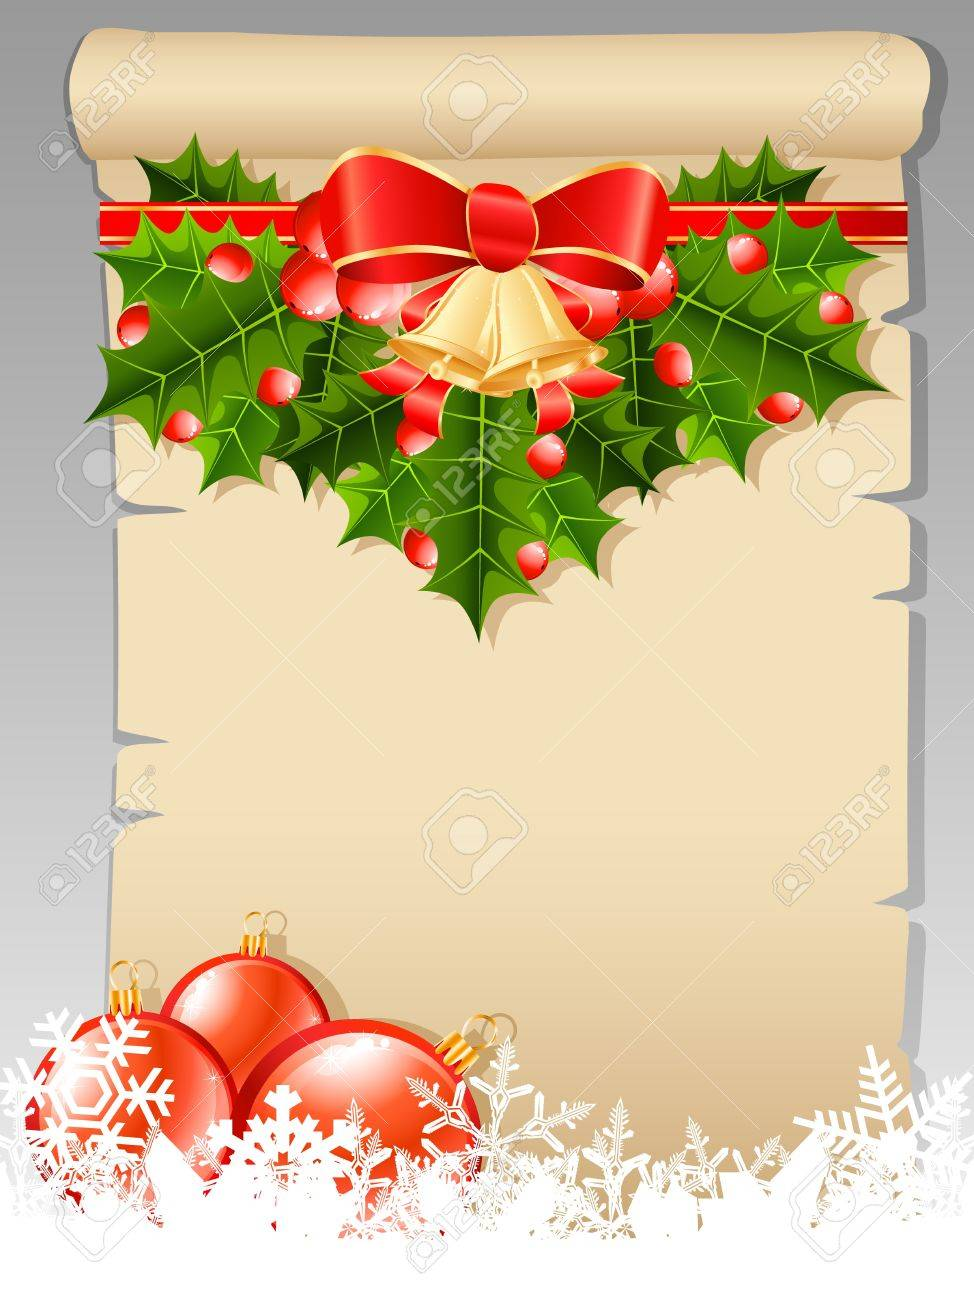 Christmas Wish List With Christmas Decoration Royalty Free Cliparts